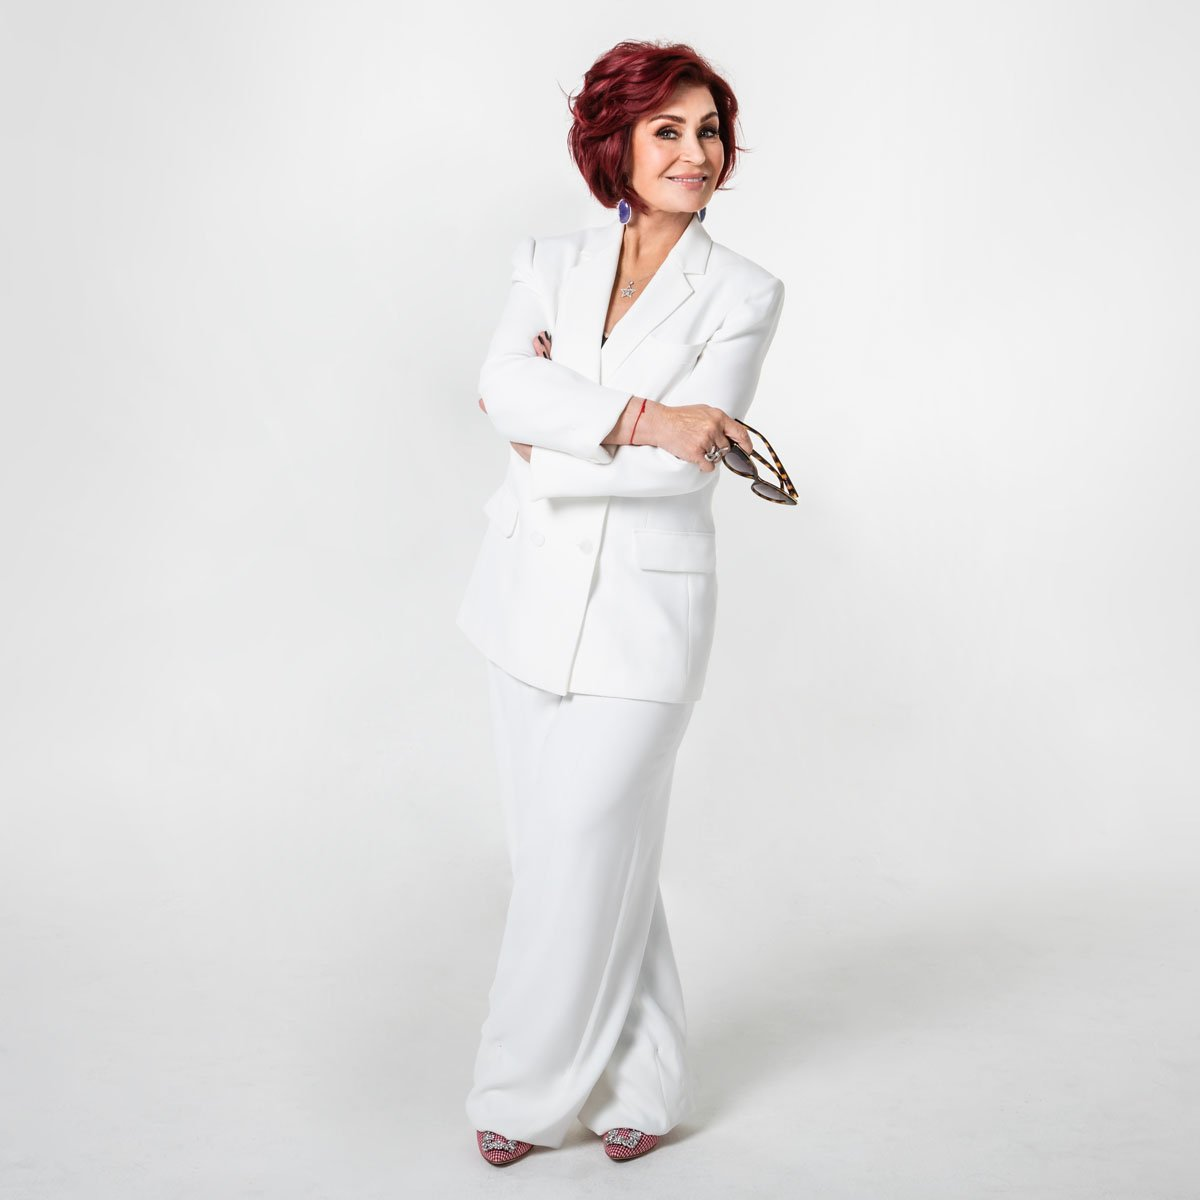 Dont miss our @MrsSOsbourne talking all things @nativityuk on @GMB @ITV very soon! TUNE IN NOW! #GMB #goodmorningbritain #sharonosbourne #ITV